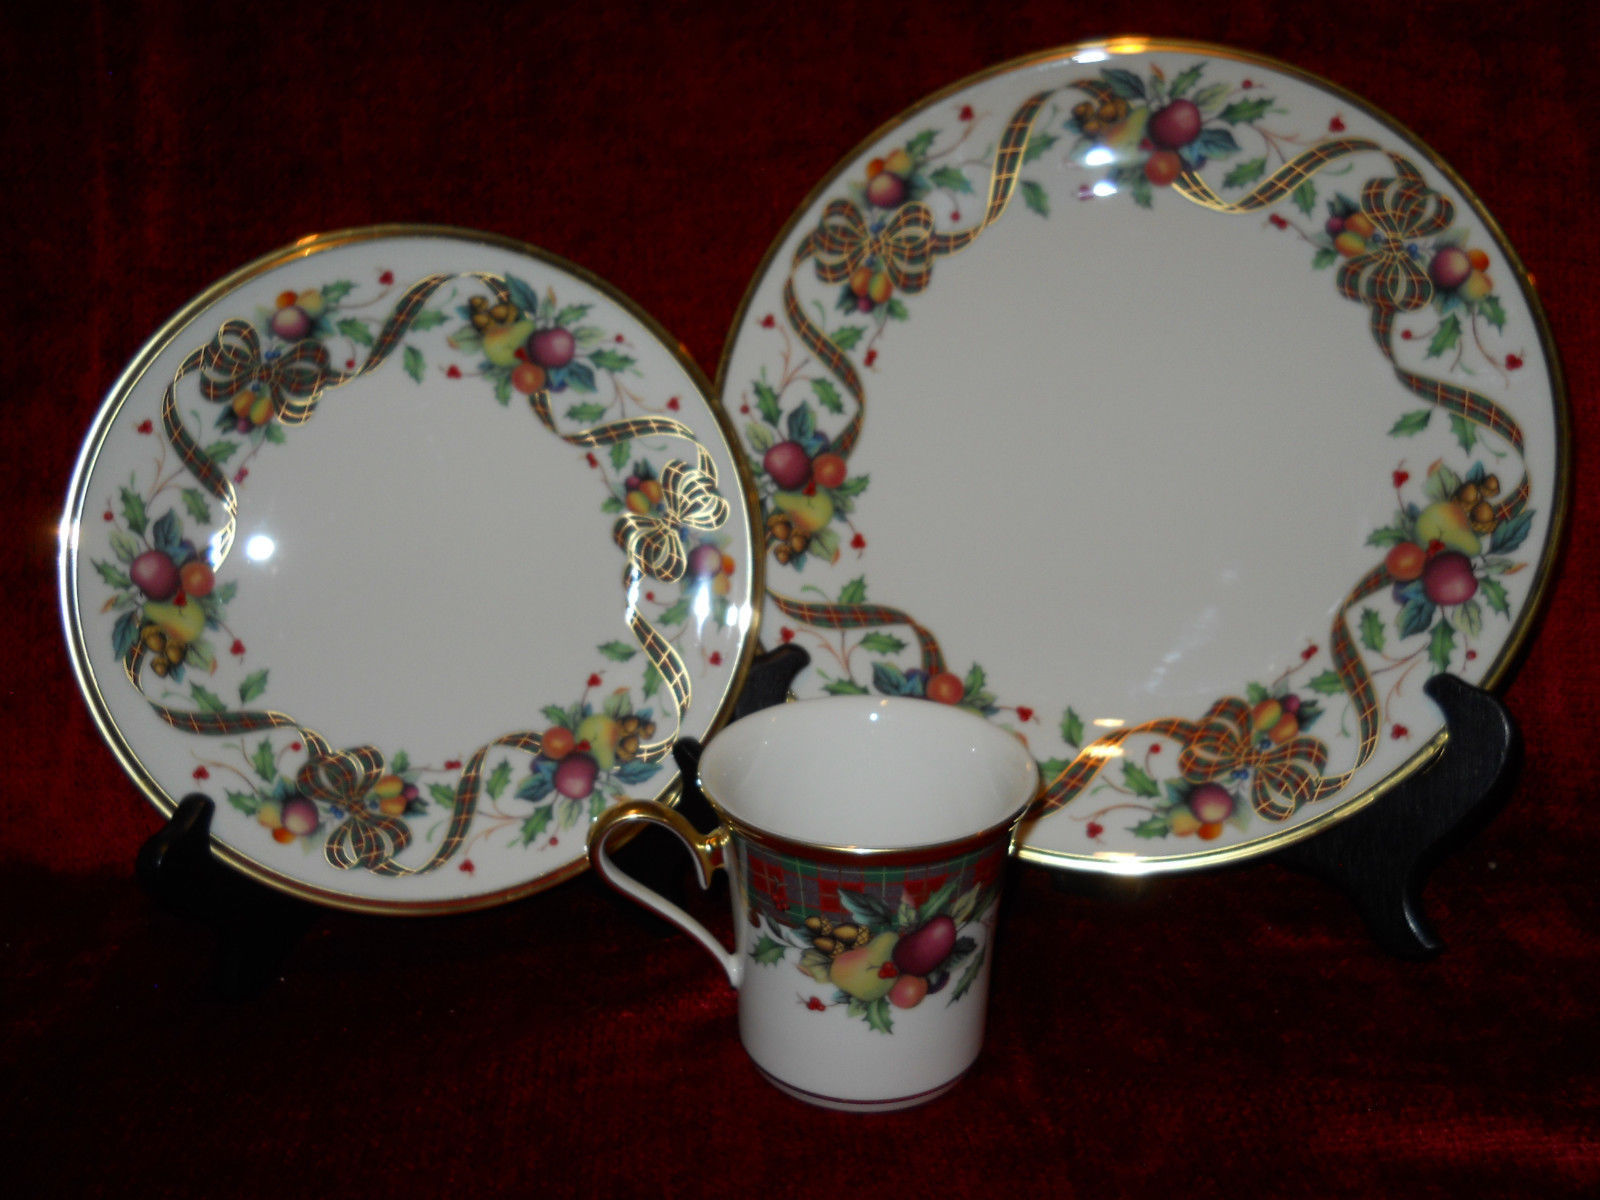 Lenox Holiday Tartan 3 piece place setting dinner salad plates and mug excellent & Lenox Holiday Tartan 3 piece place setting and 10 similar items